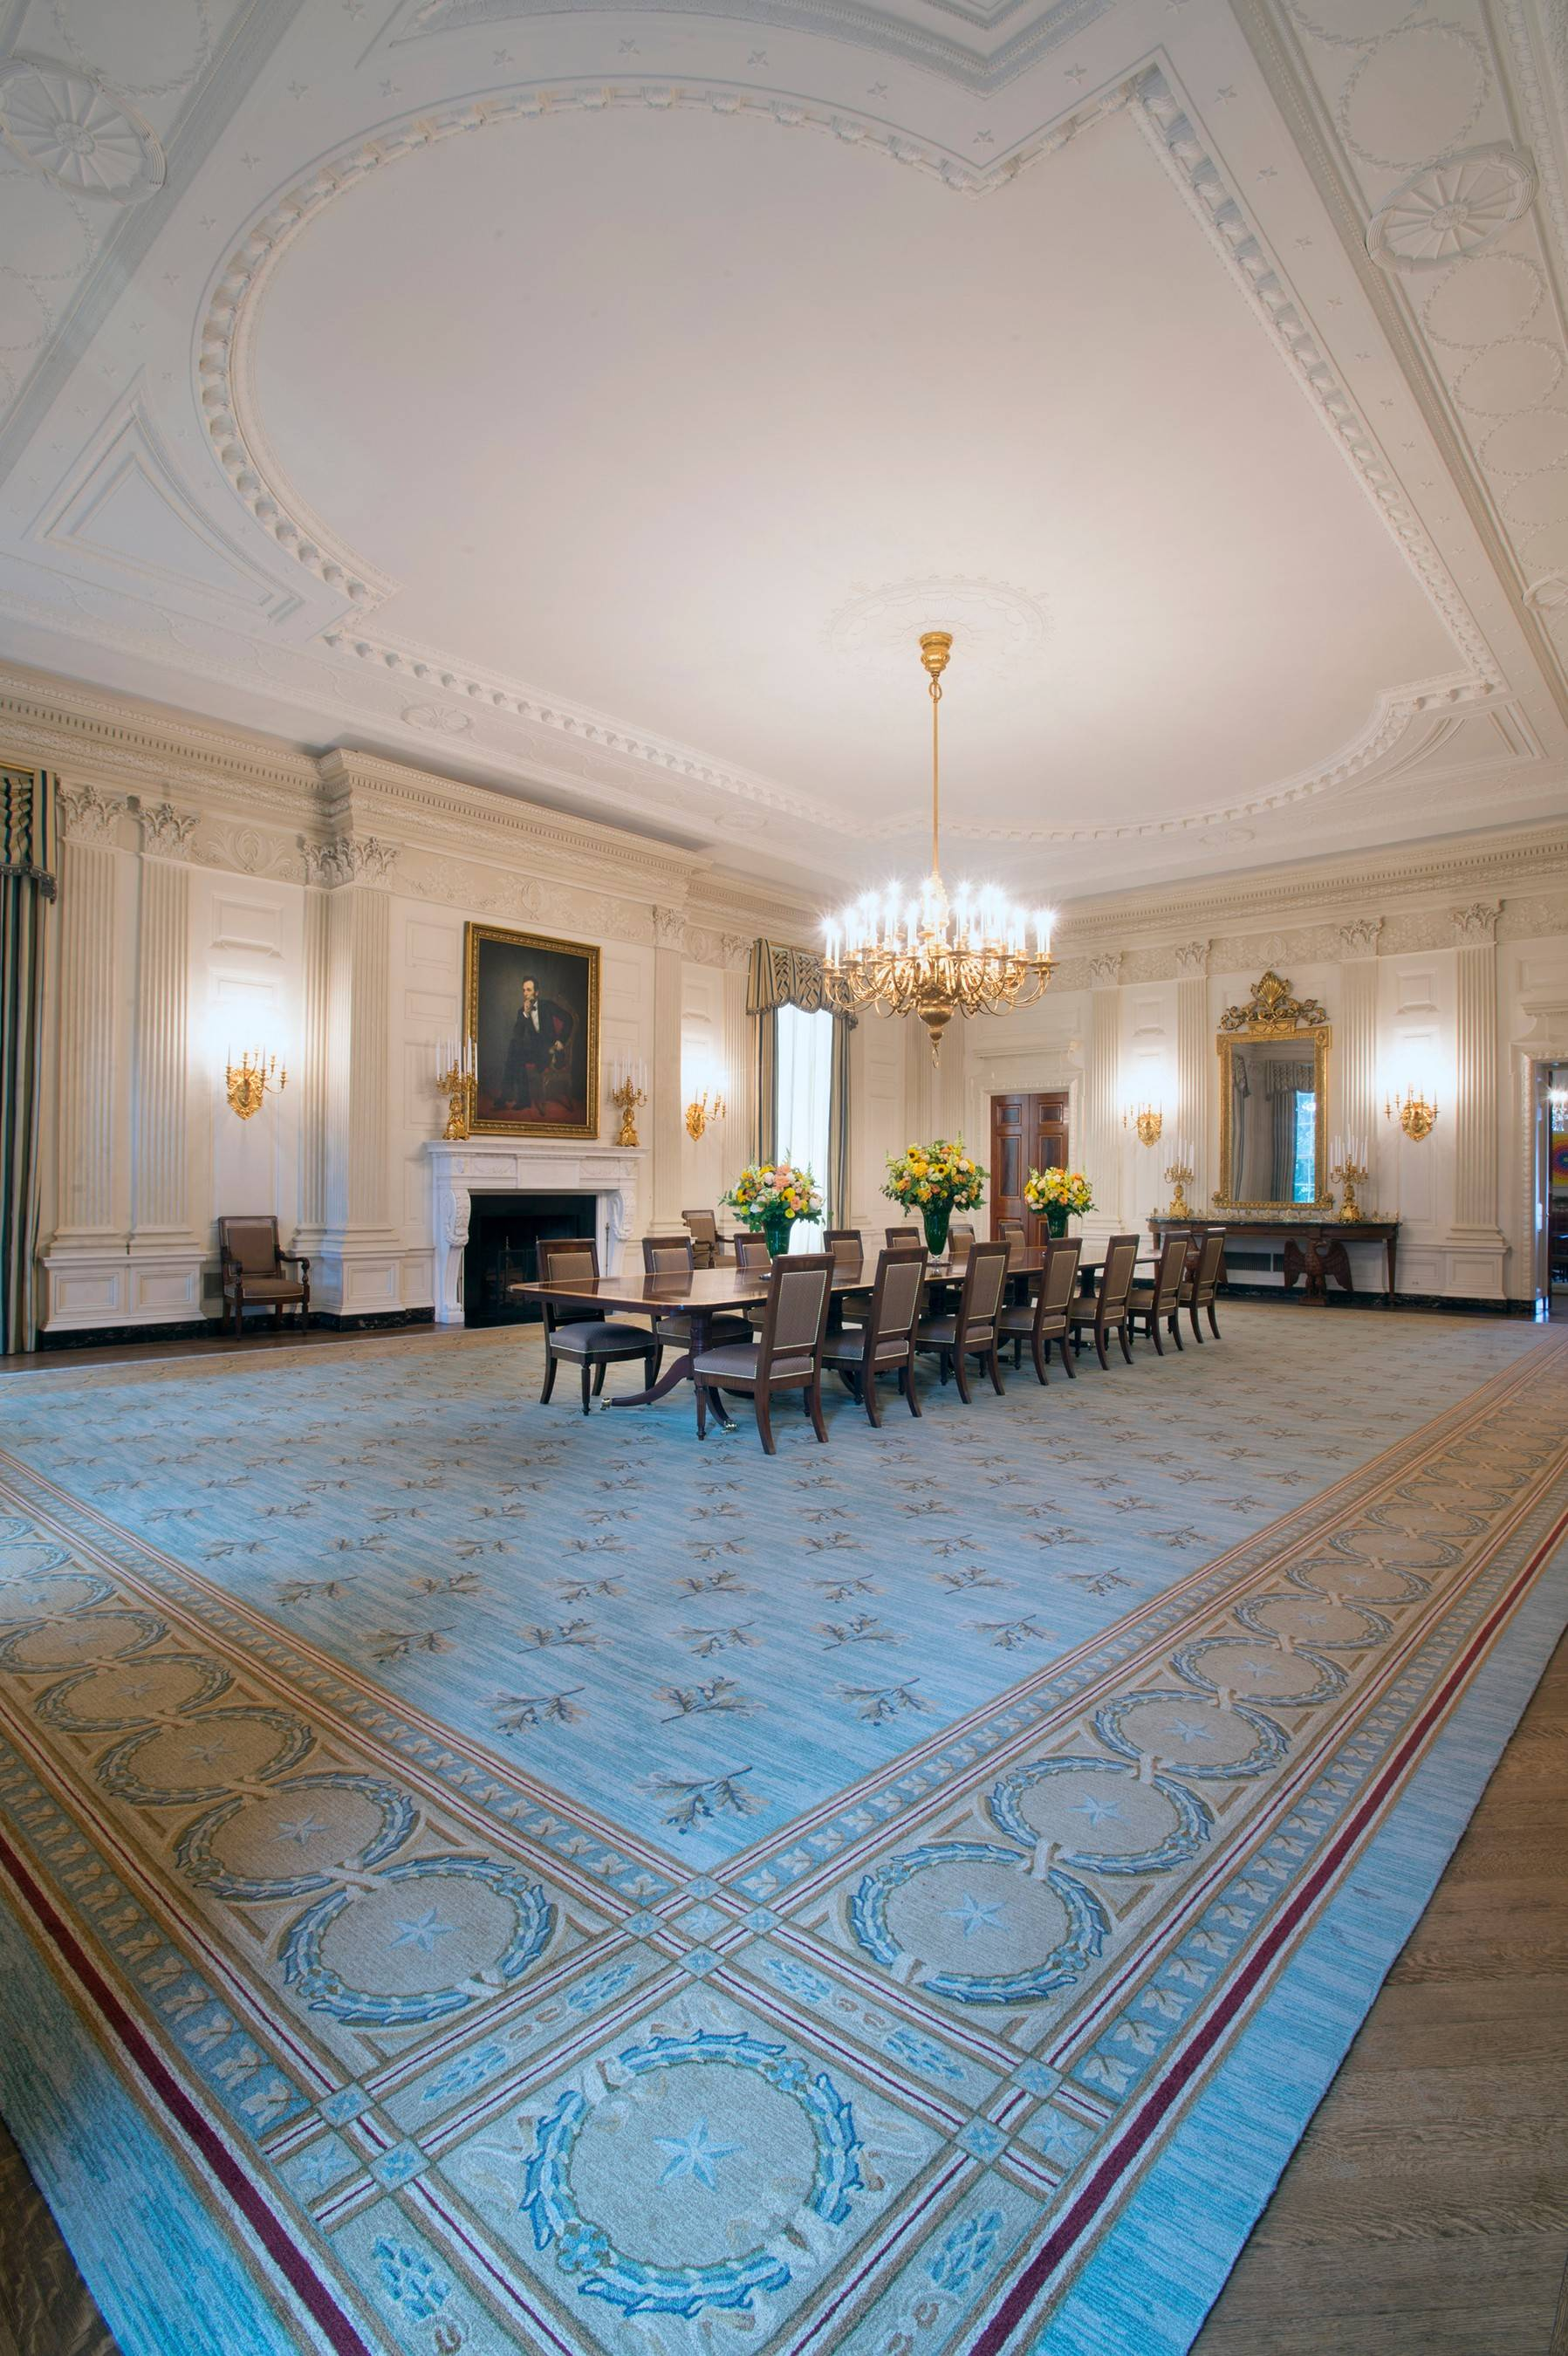 The State Dining Room of the White House in Washington, D.C., has a fancy new rug, custom-woven with motifs of wreaths and oak leaves taken from the intricate ornamental plasterwork of the ceiling.